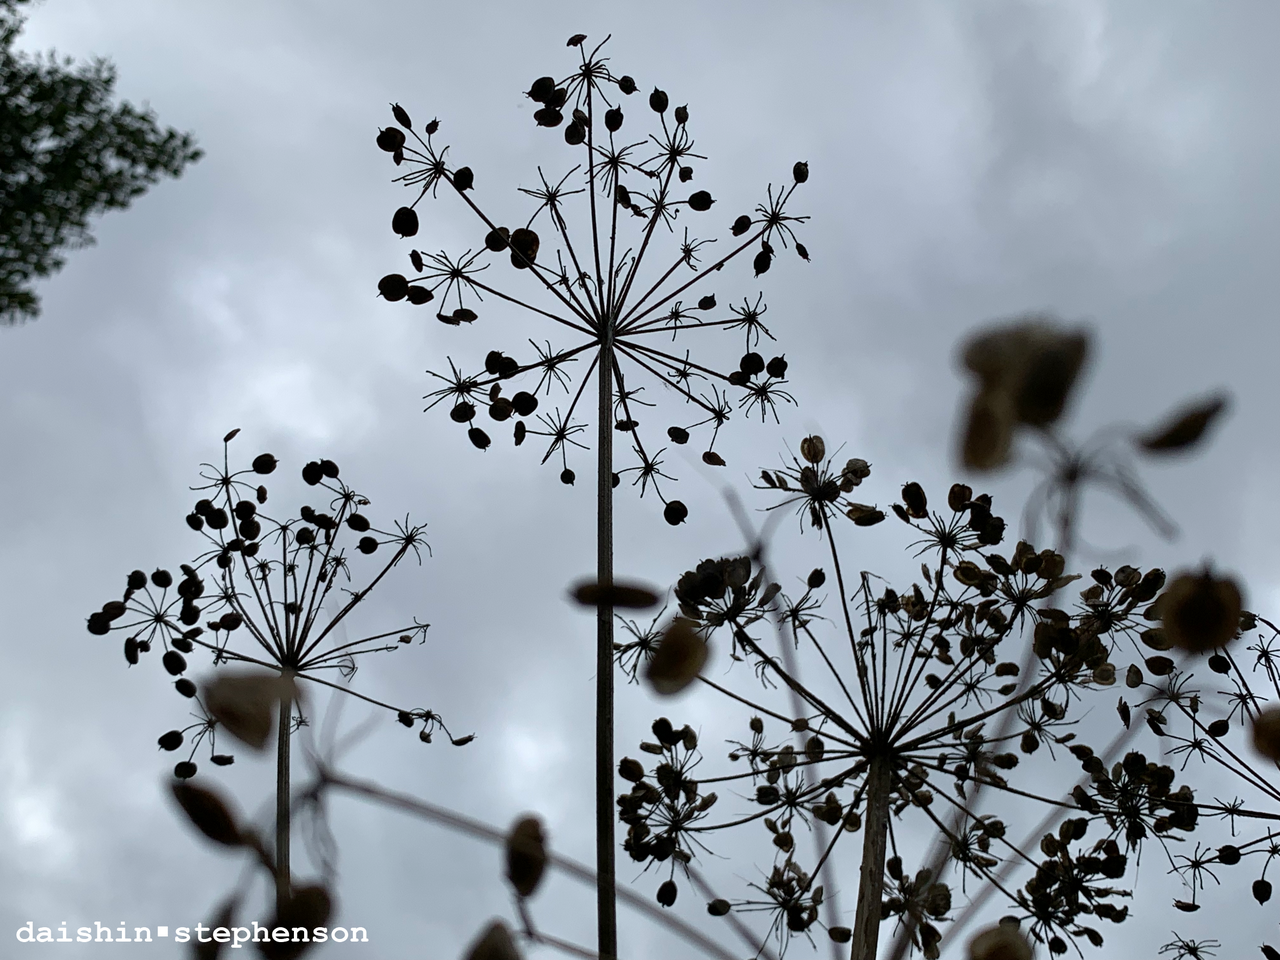 laying on ground looking up at dried seed pods on stems